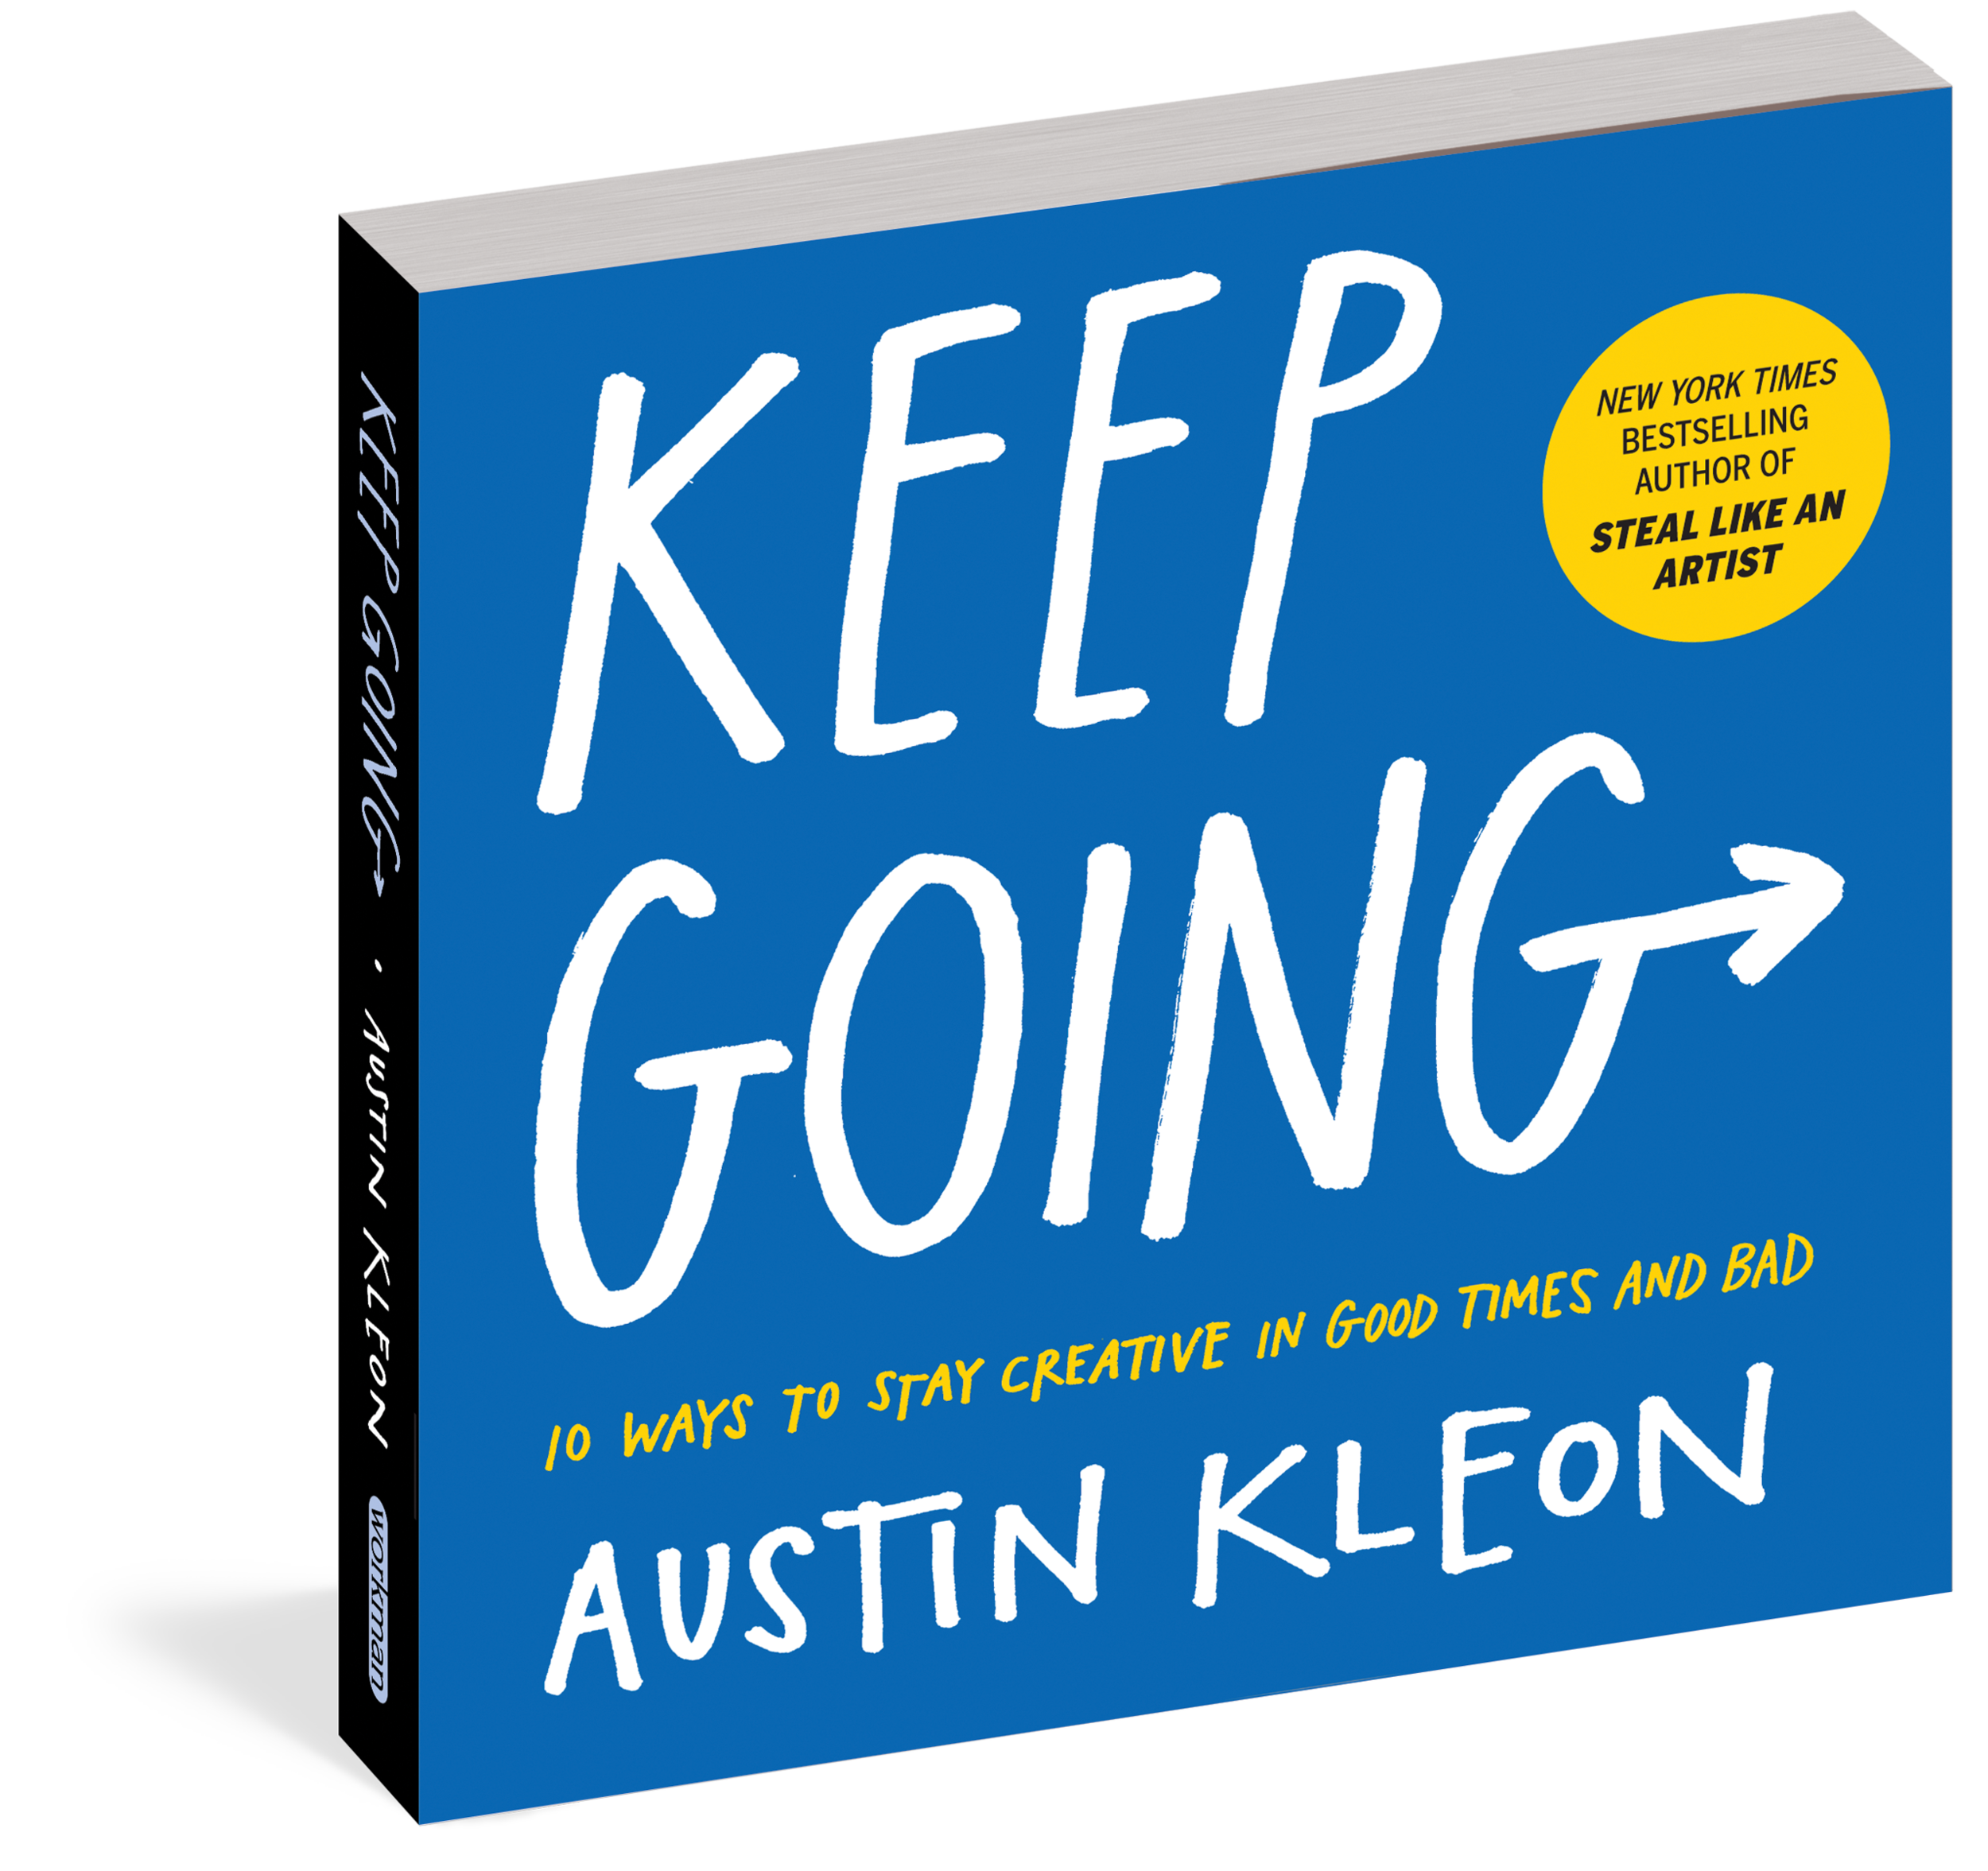 keep-going-austin-kleon-book